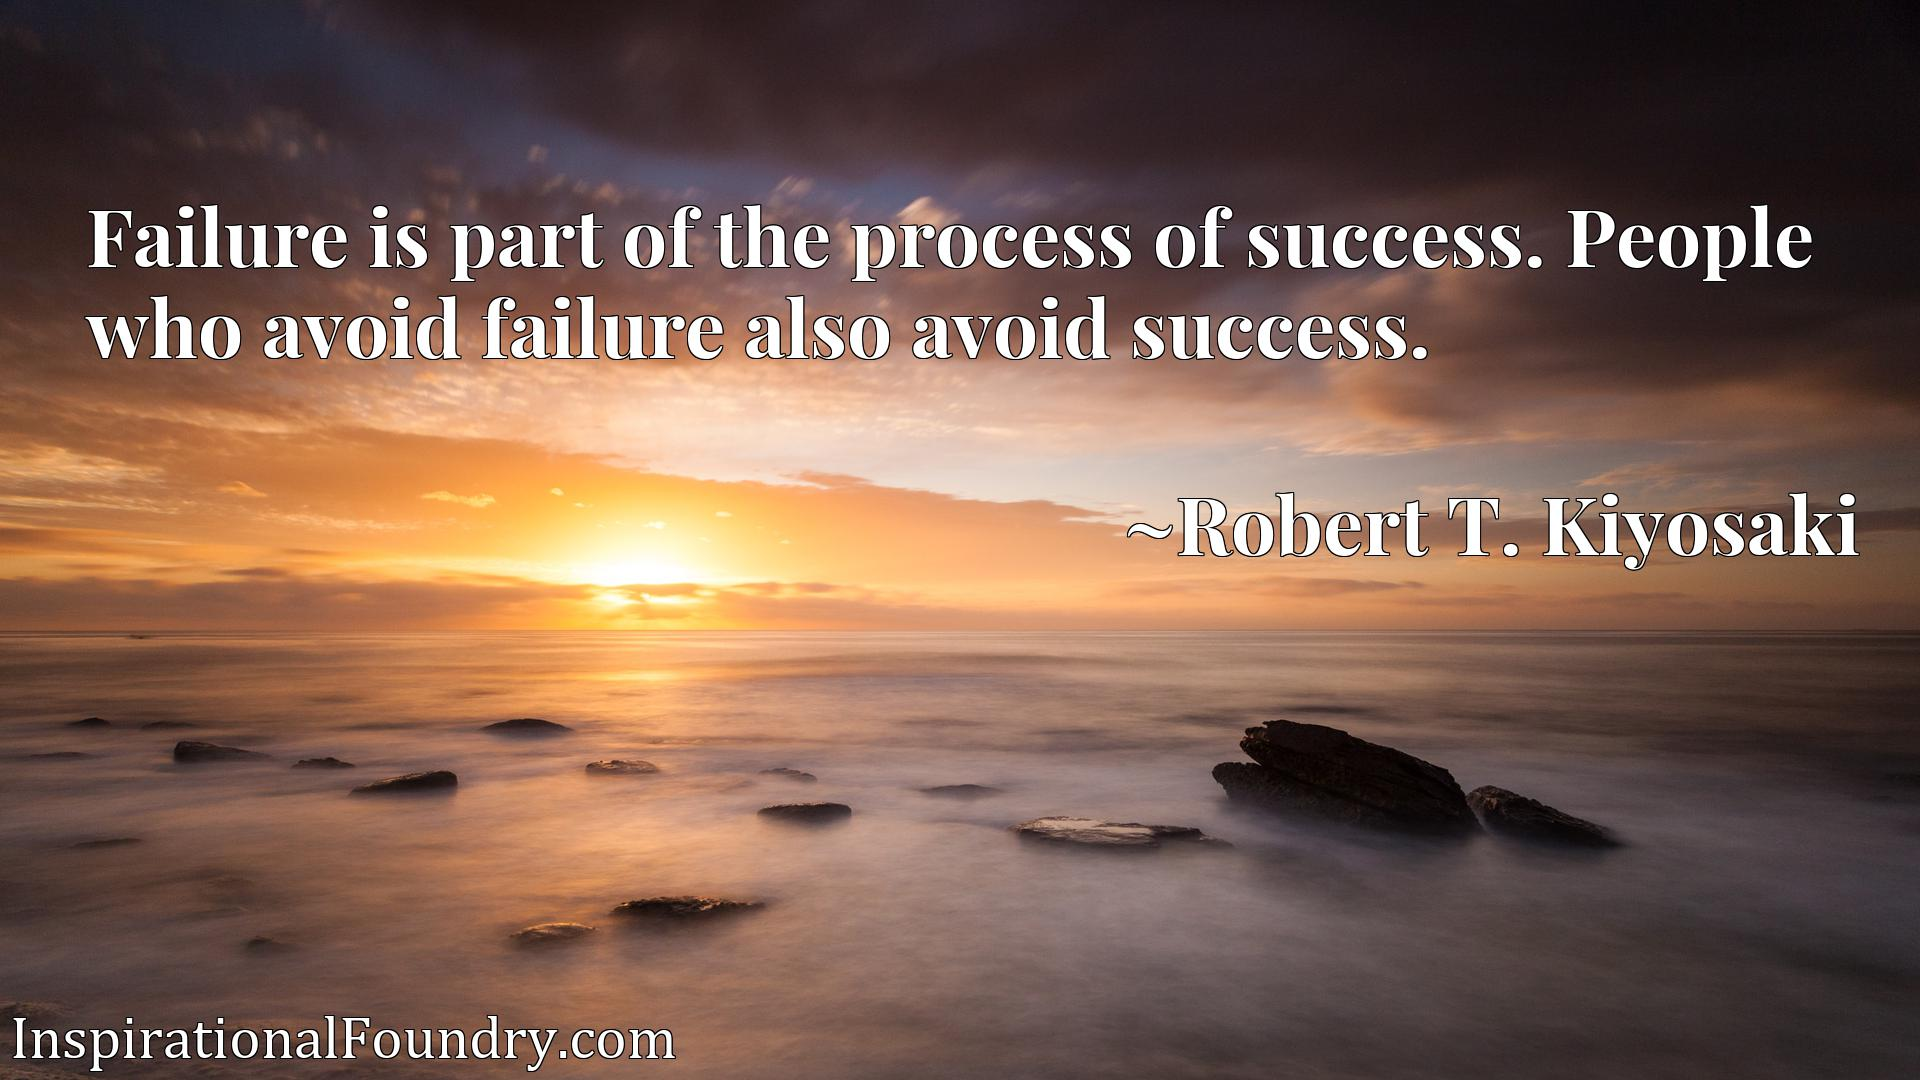 Failure is part of the process of success. People who avoid failure also avoid success.